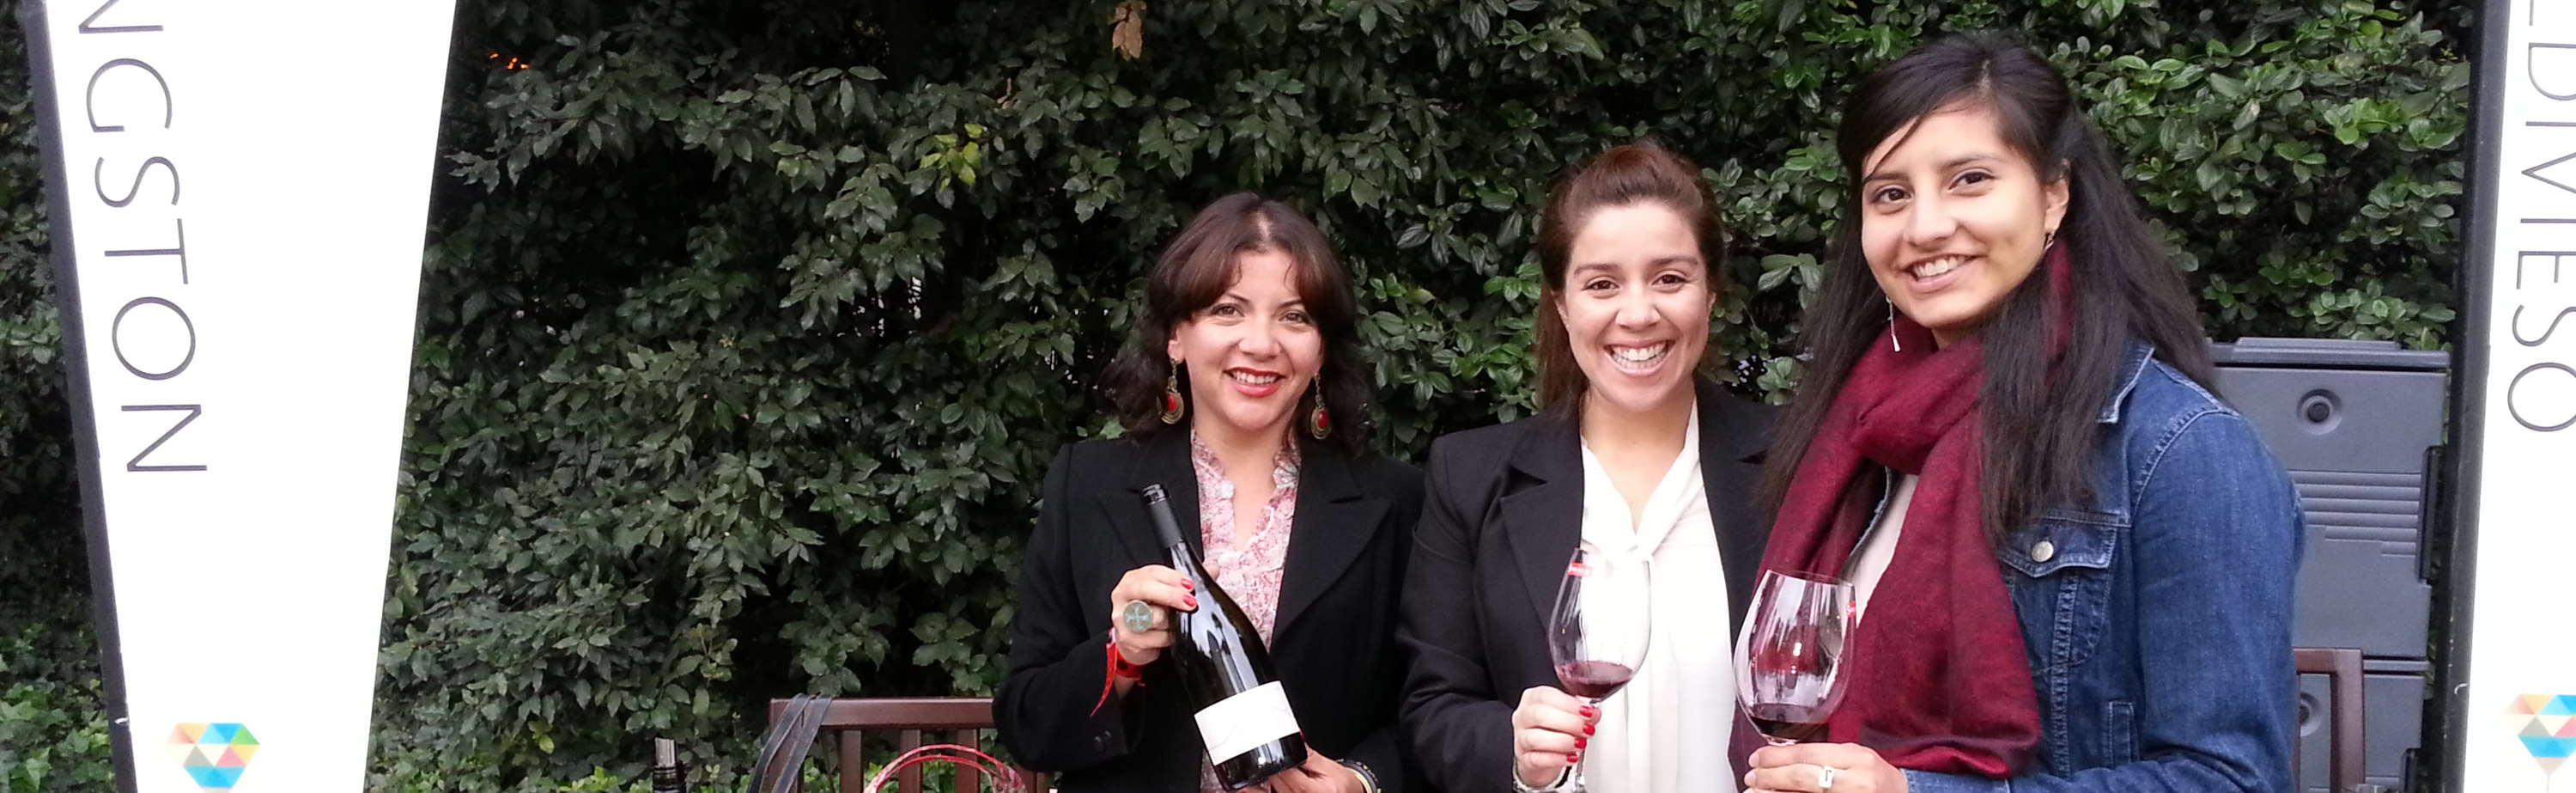 Kingston Family Vineyards team at Descorchados Feria de Vinos de Lujo 2012